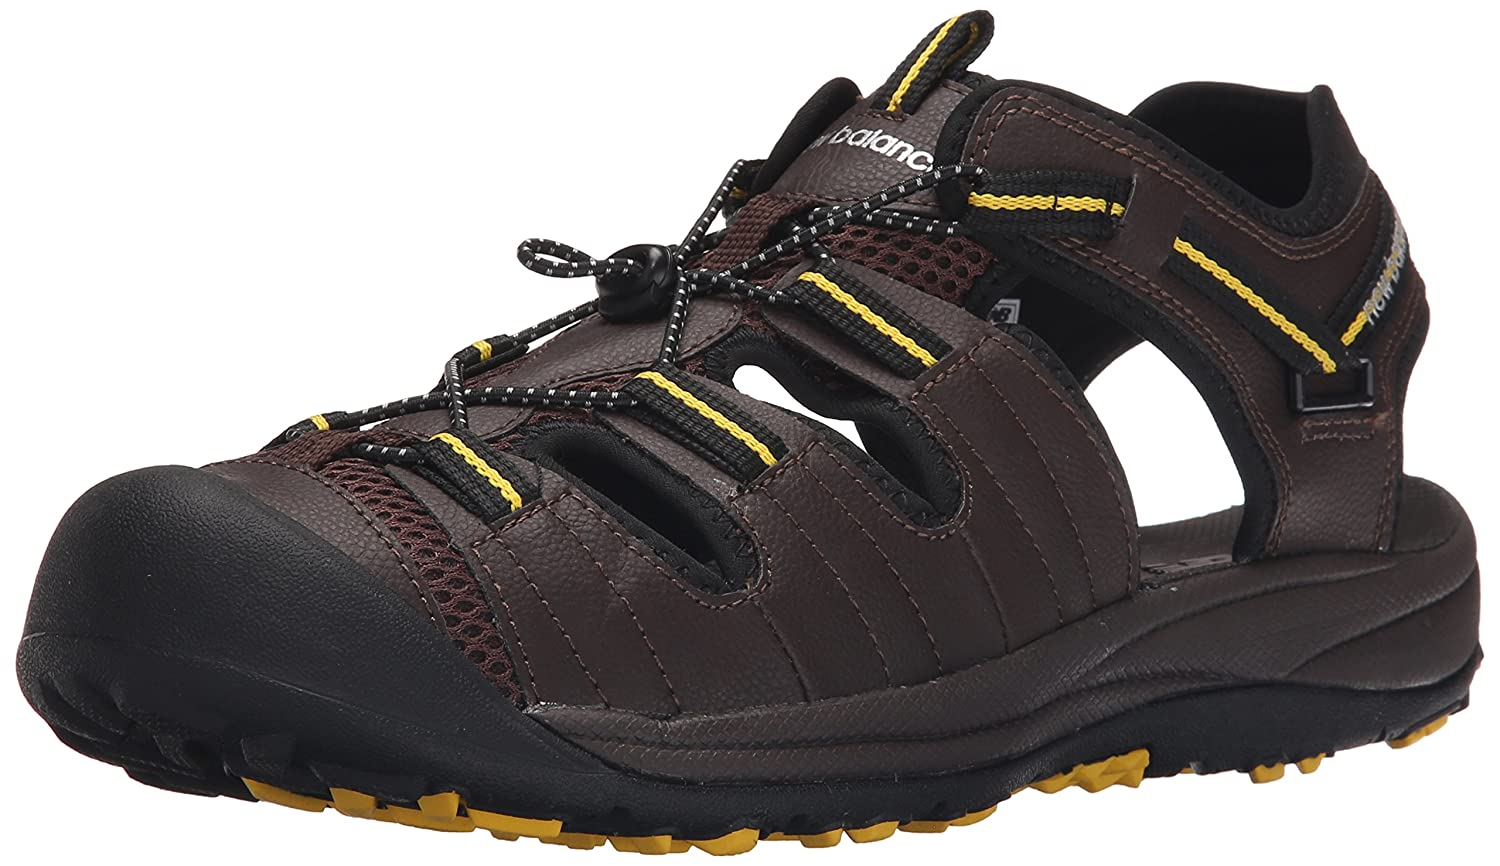 New Balance Men'S Appalachian Sandal 44 EU|Brown